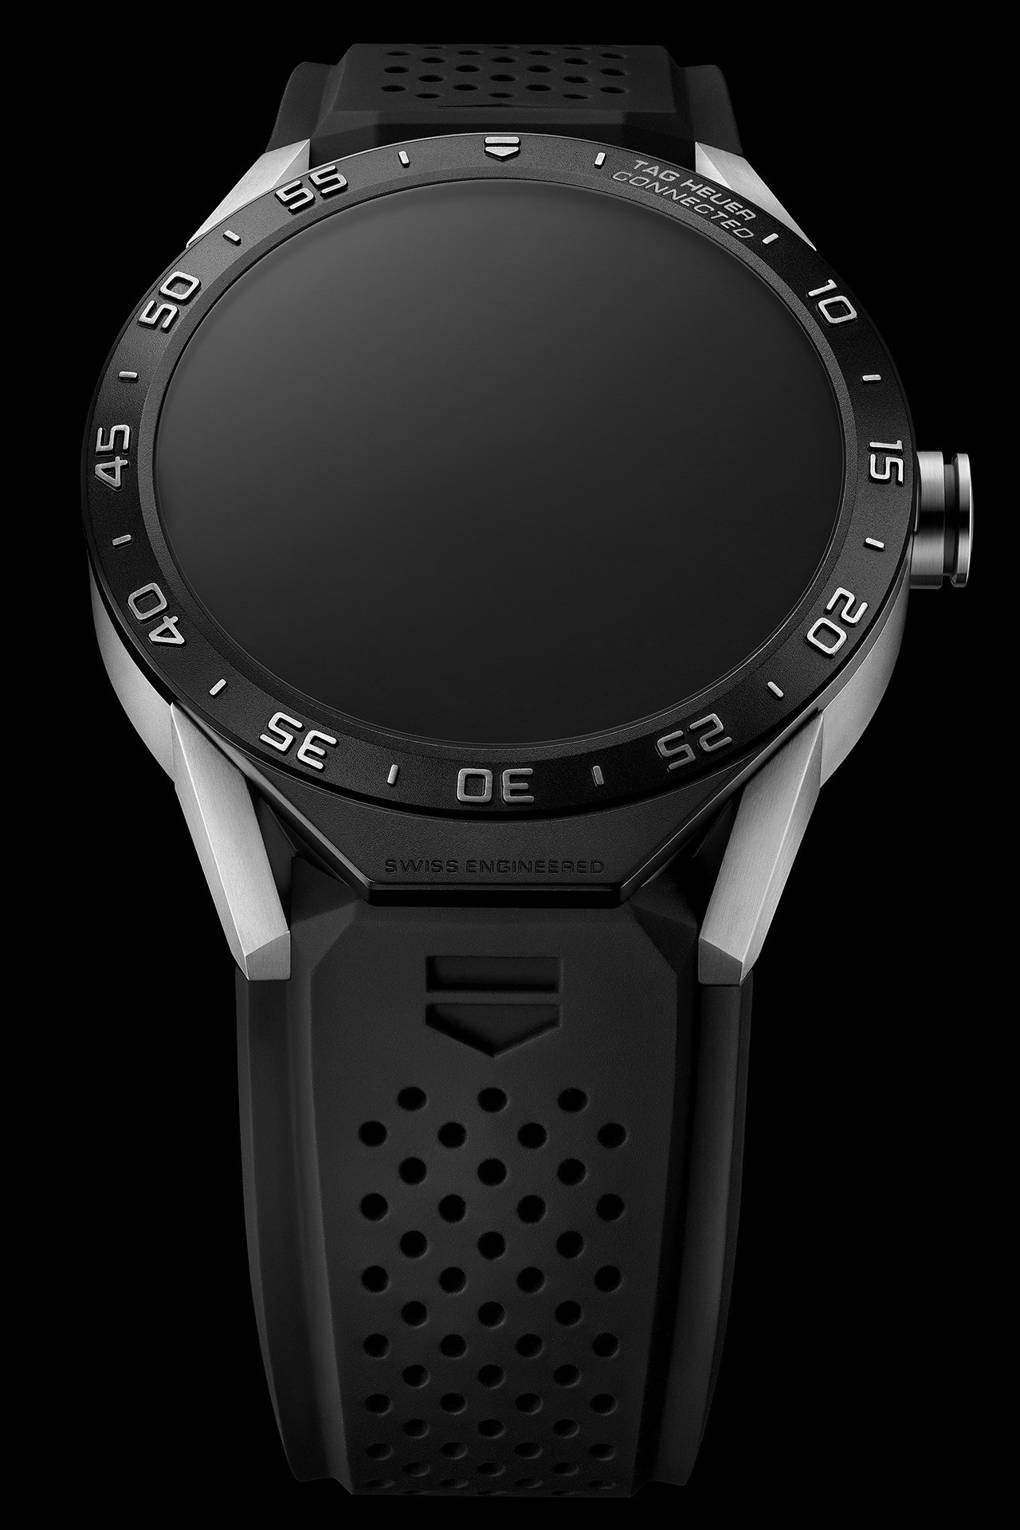 f20667df271 TAG Heuer Connected smartwatch  smart luxury